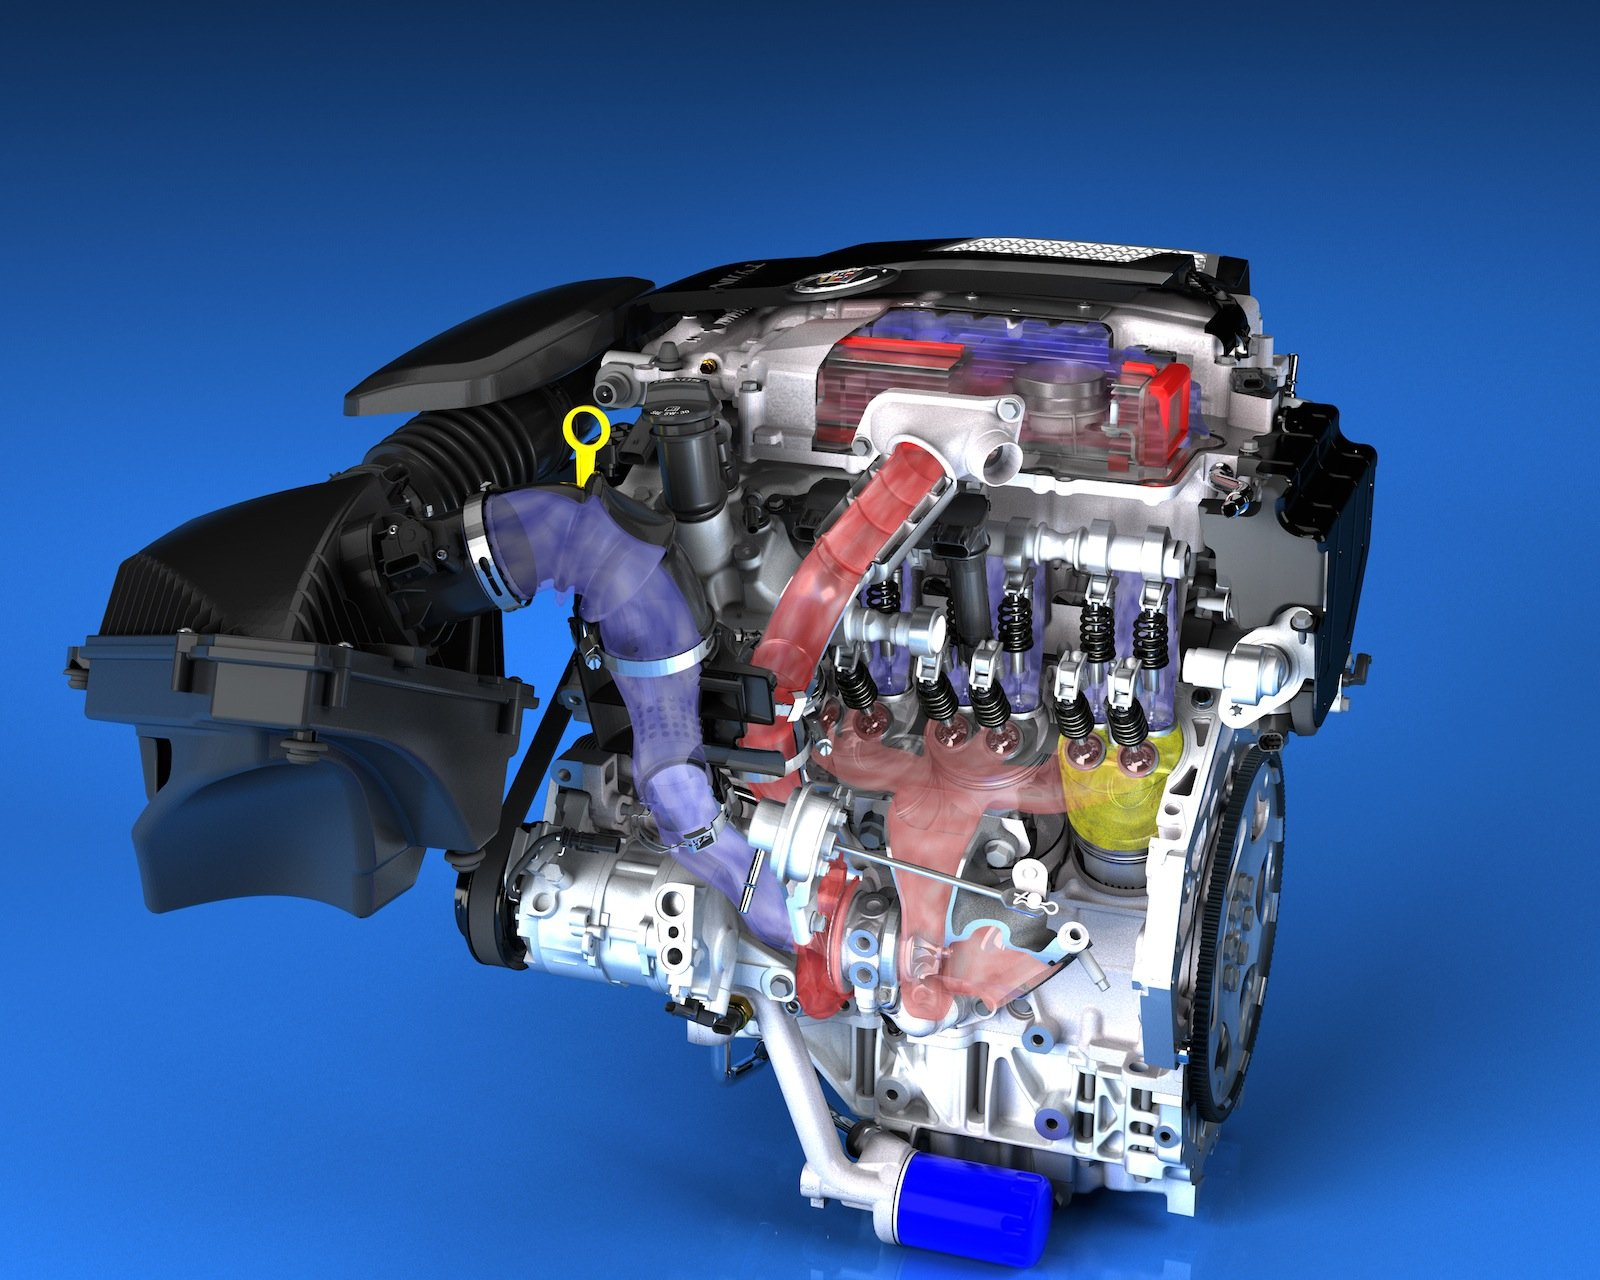 Cadillac Cts To Debut New Twin Turbo Engine Eight Speed